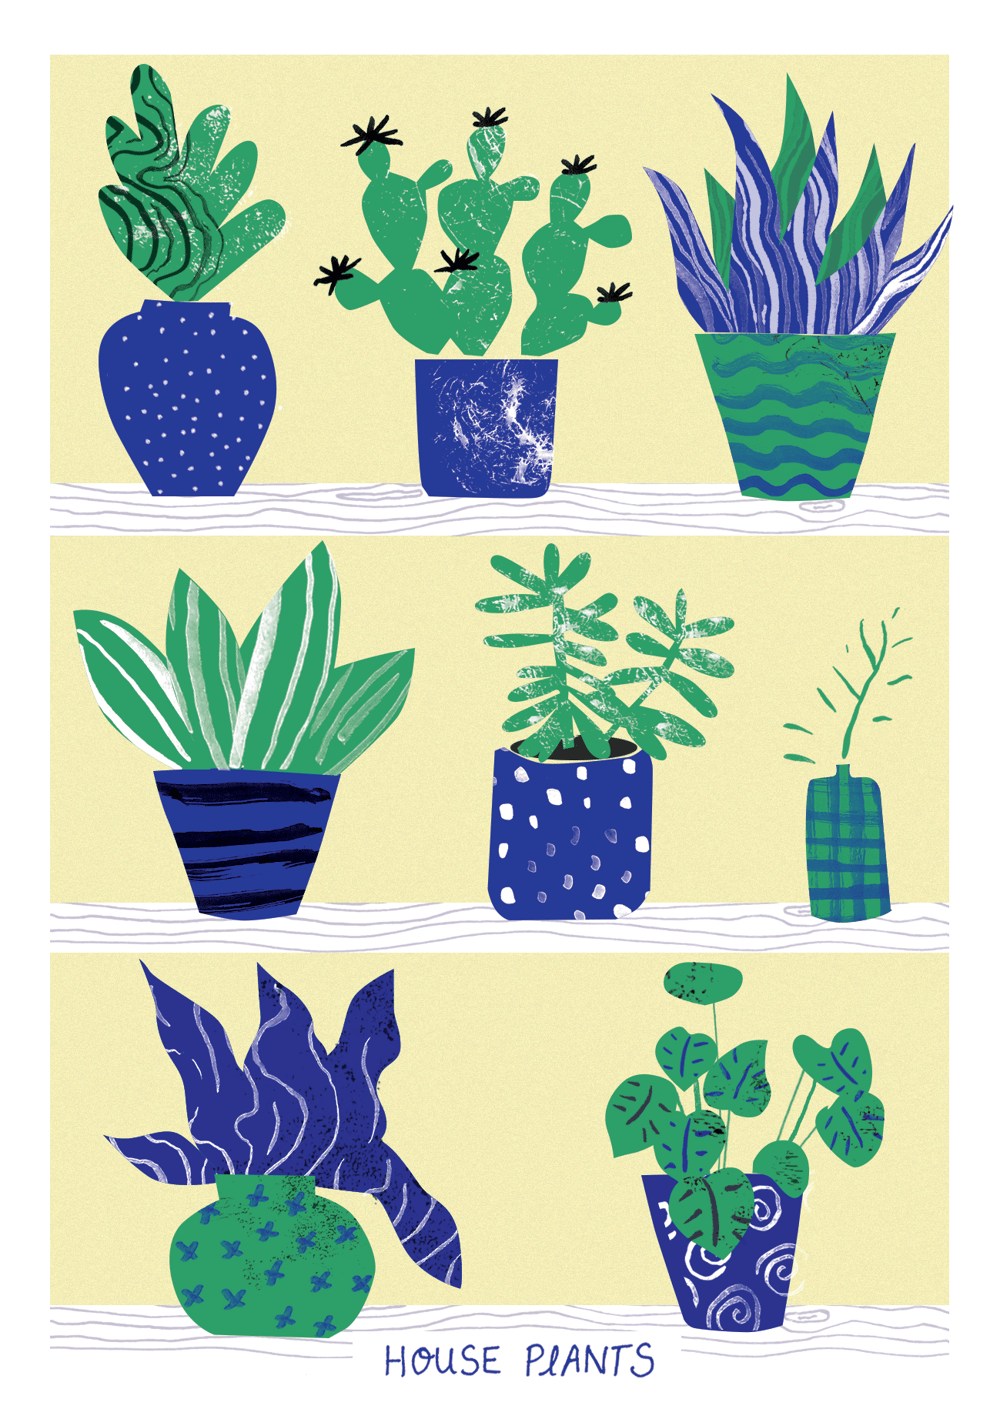 Cactus and indoor plants - image 5 - student project